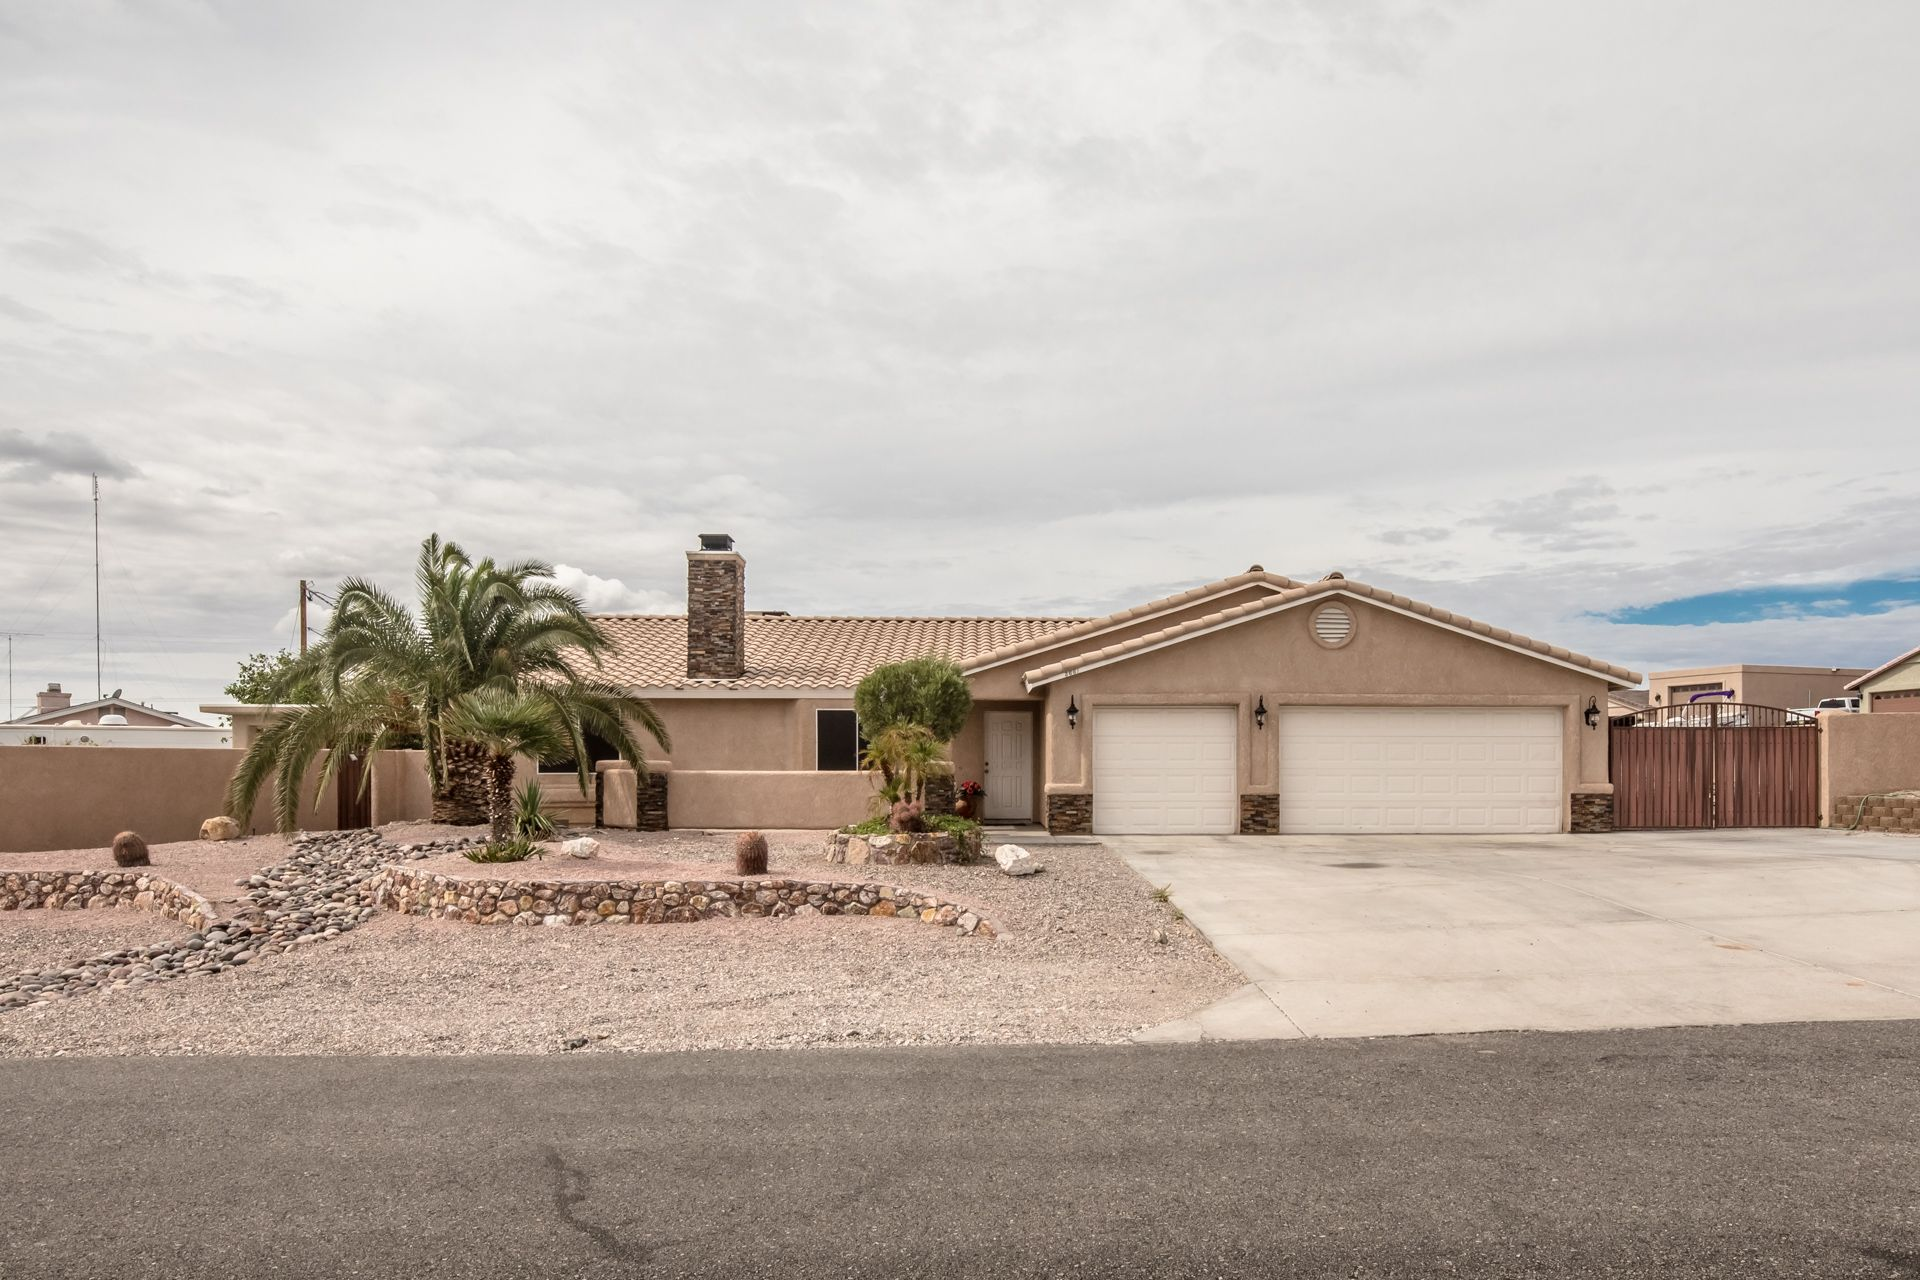 Updated Home On A Corner Lot With A 3 Car Garage, Block Wall And A